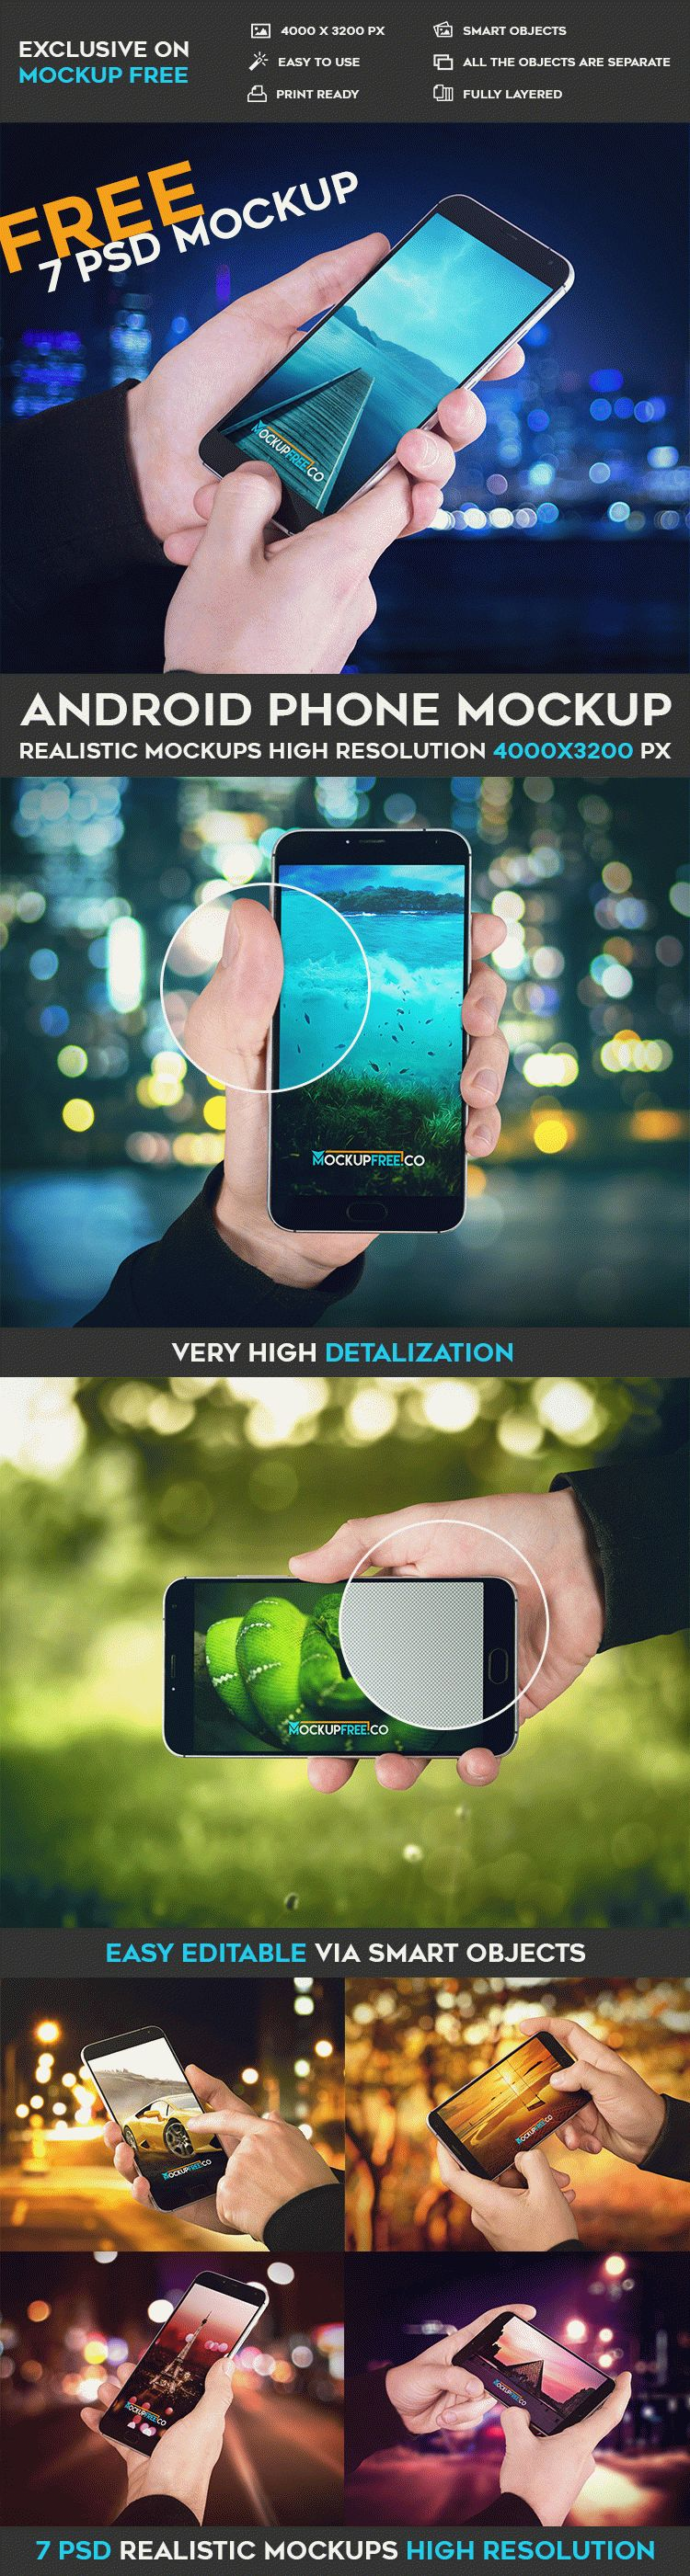 Android Phone - 7 Free PSD Mockups